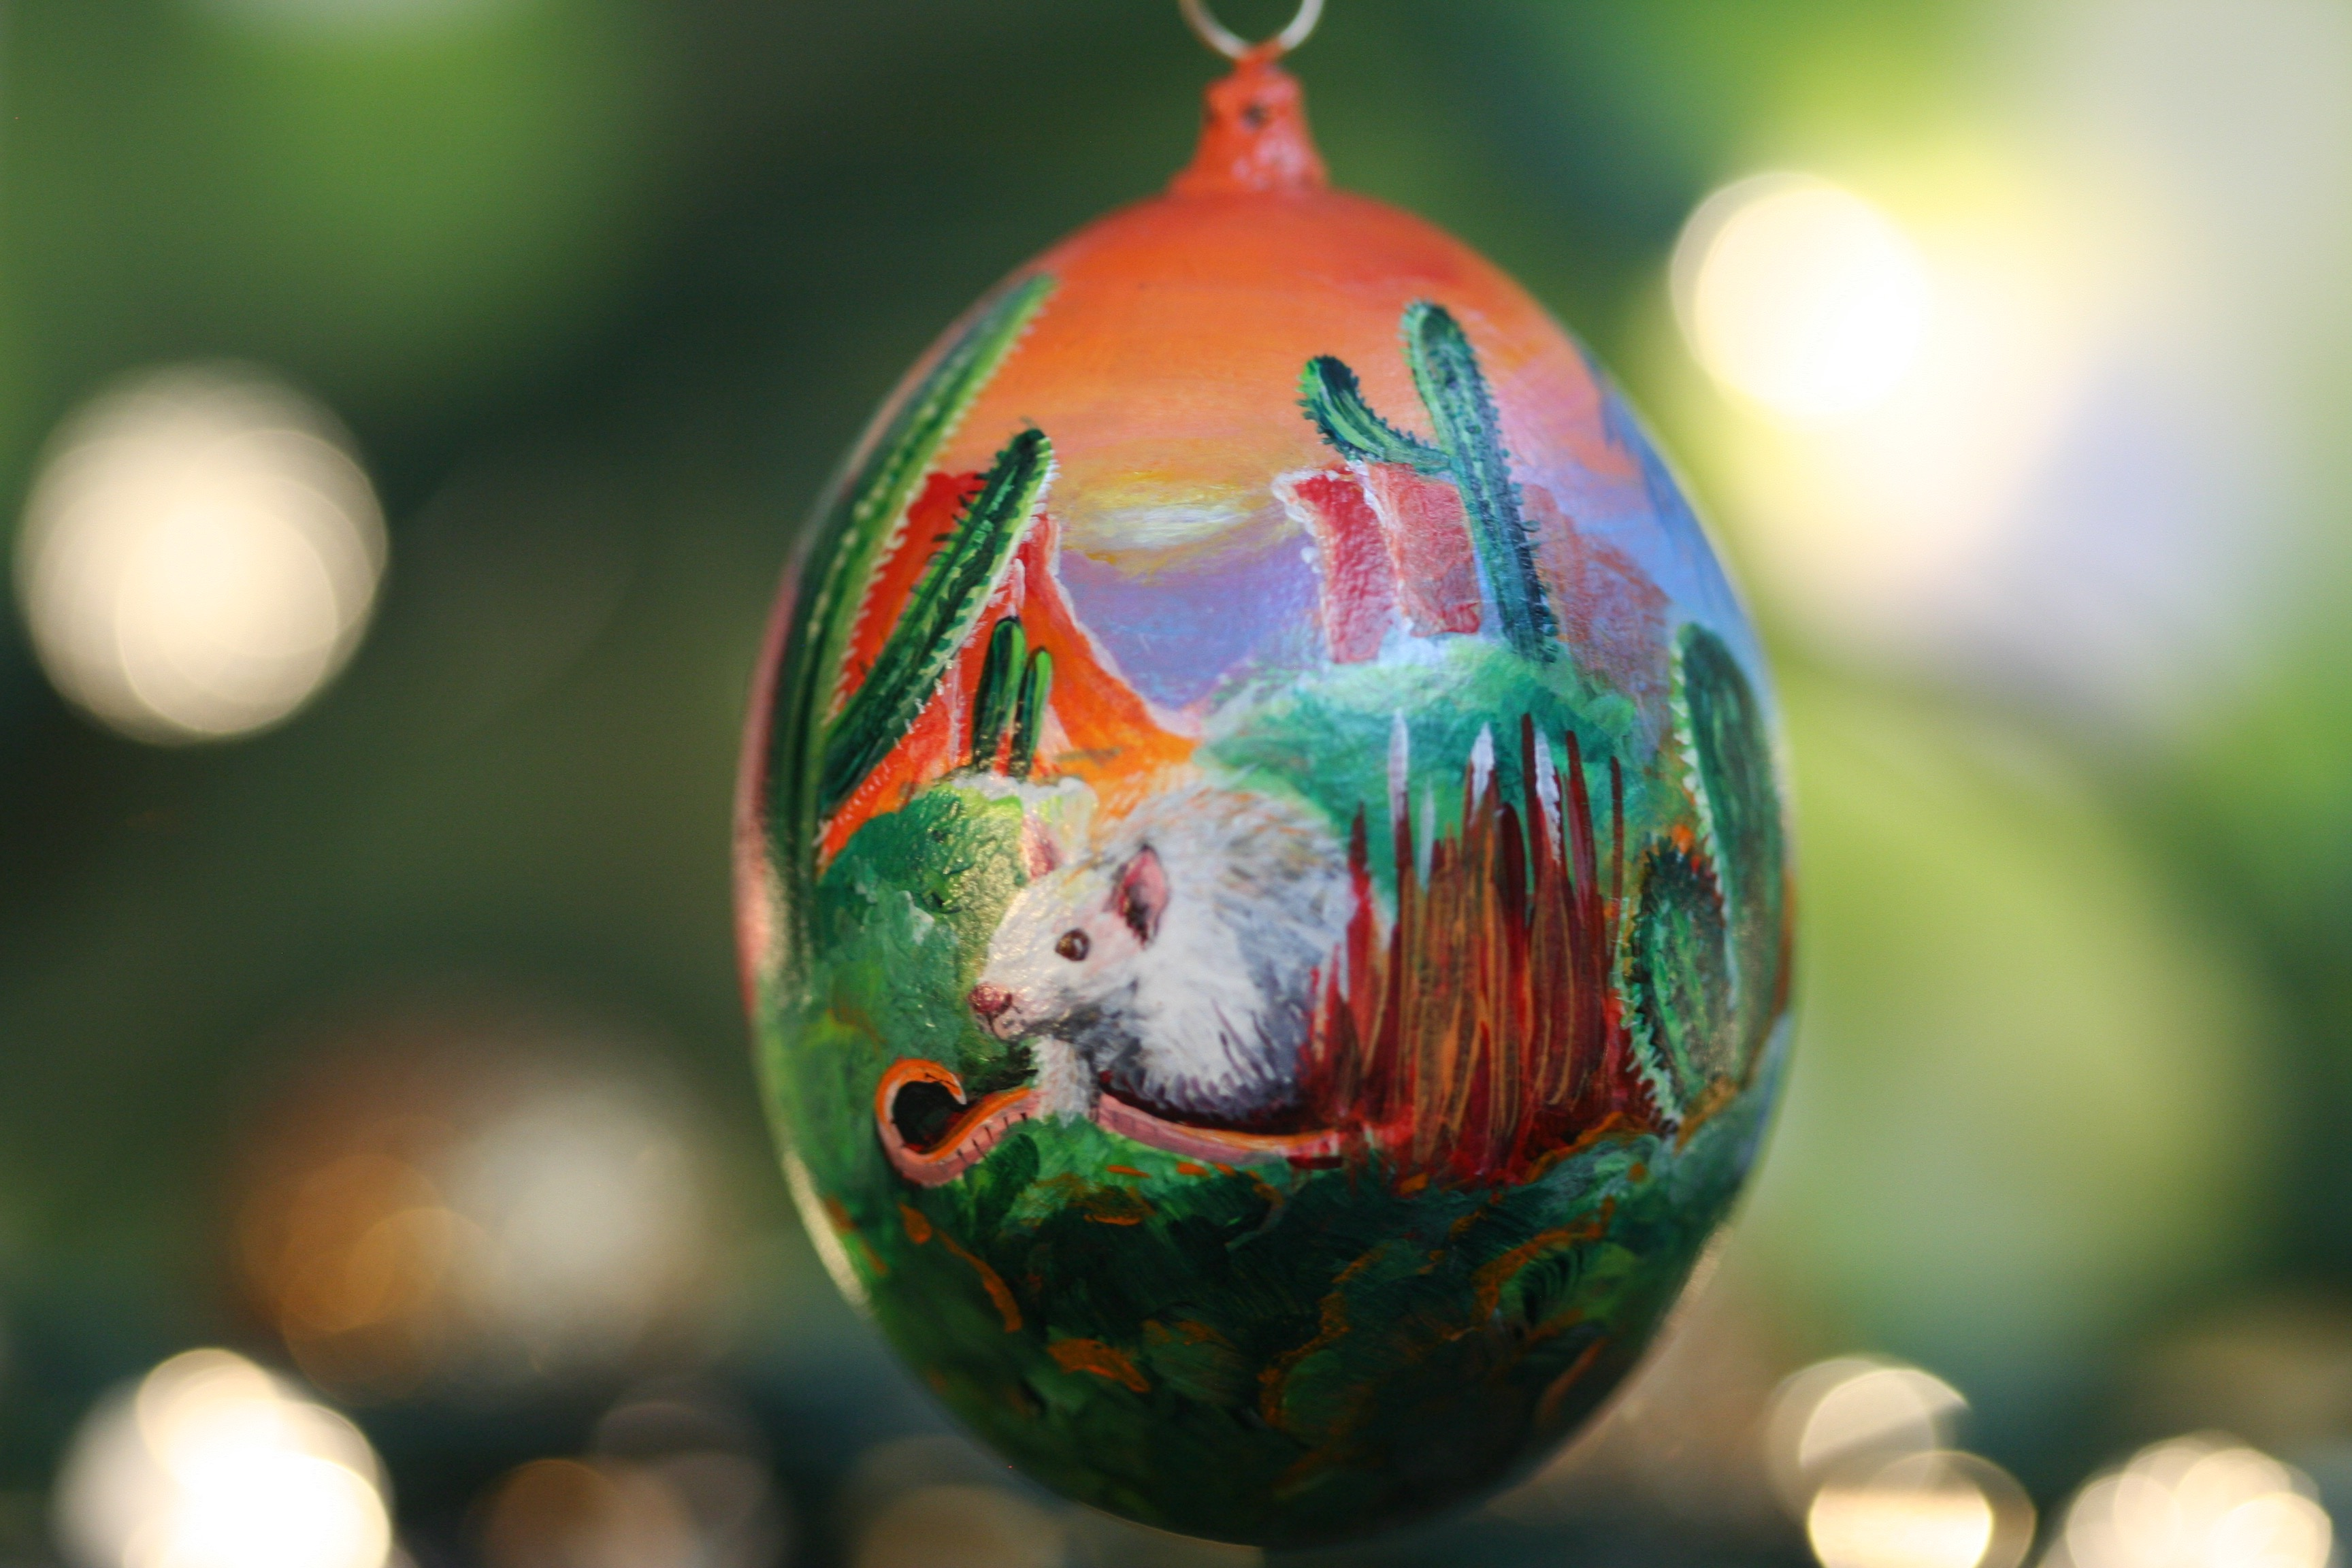 Rat with Cactus and Sunset Ornament